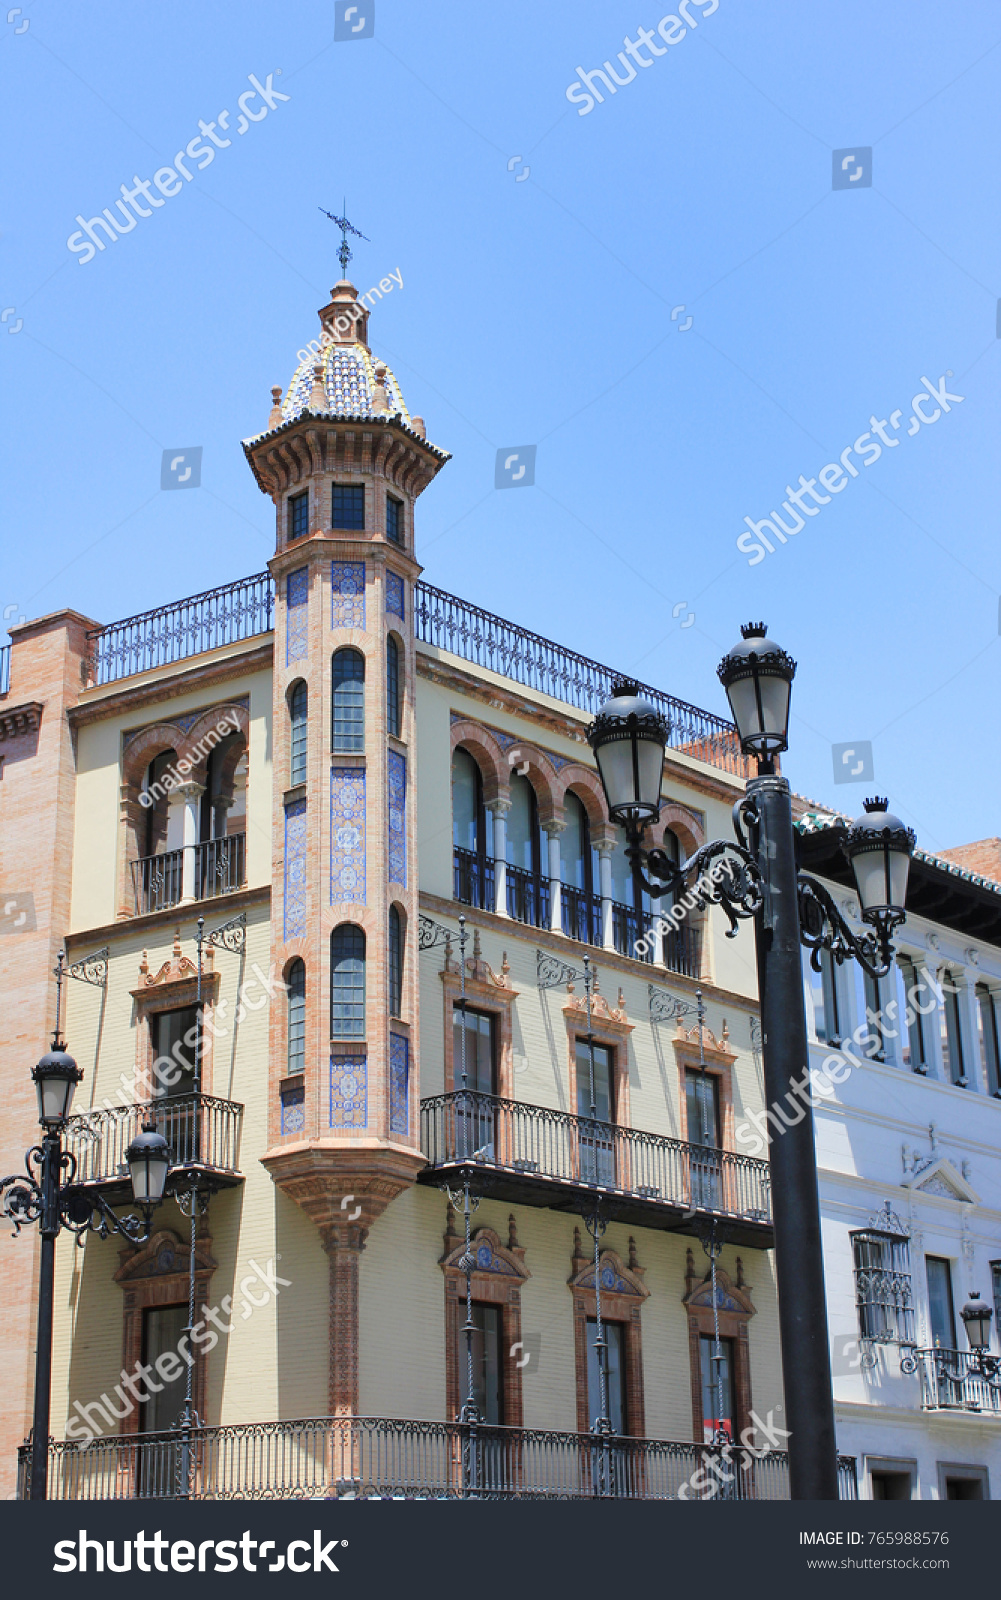 Andalusian Traditional Spanish Architecture Building With Historical Ornamental Windows And Outdoor Lantern In Seville Spain